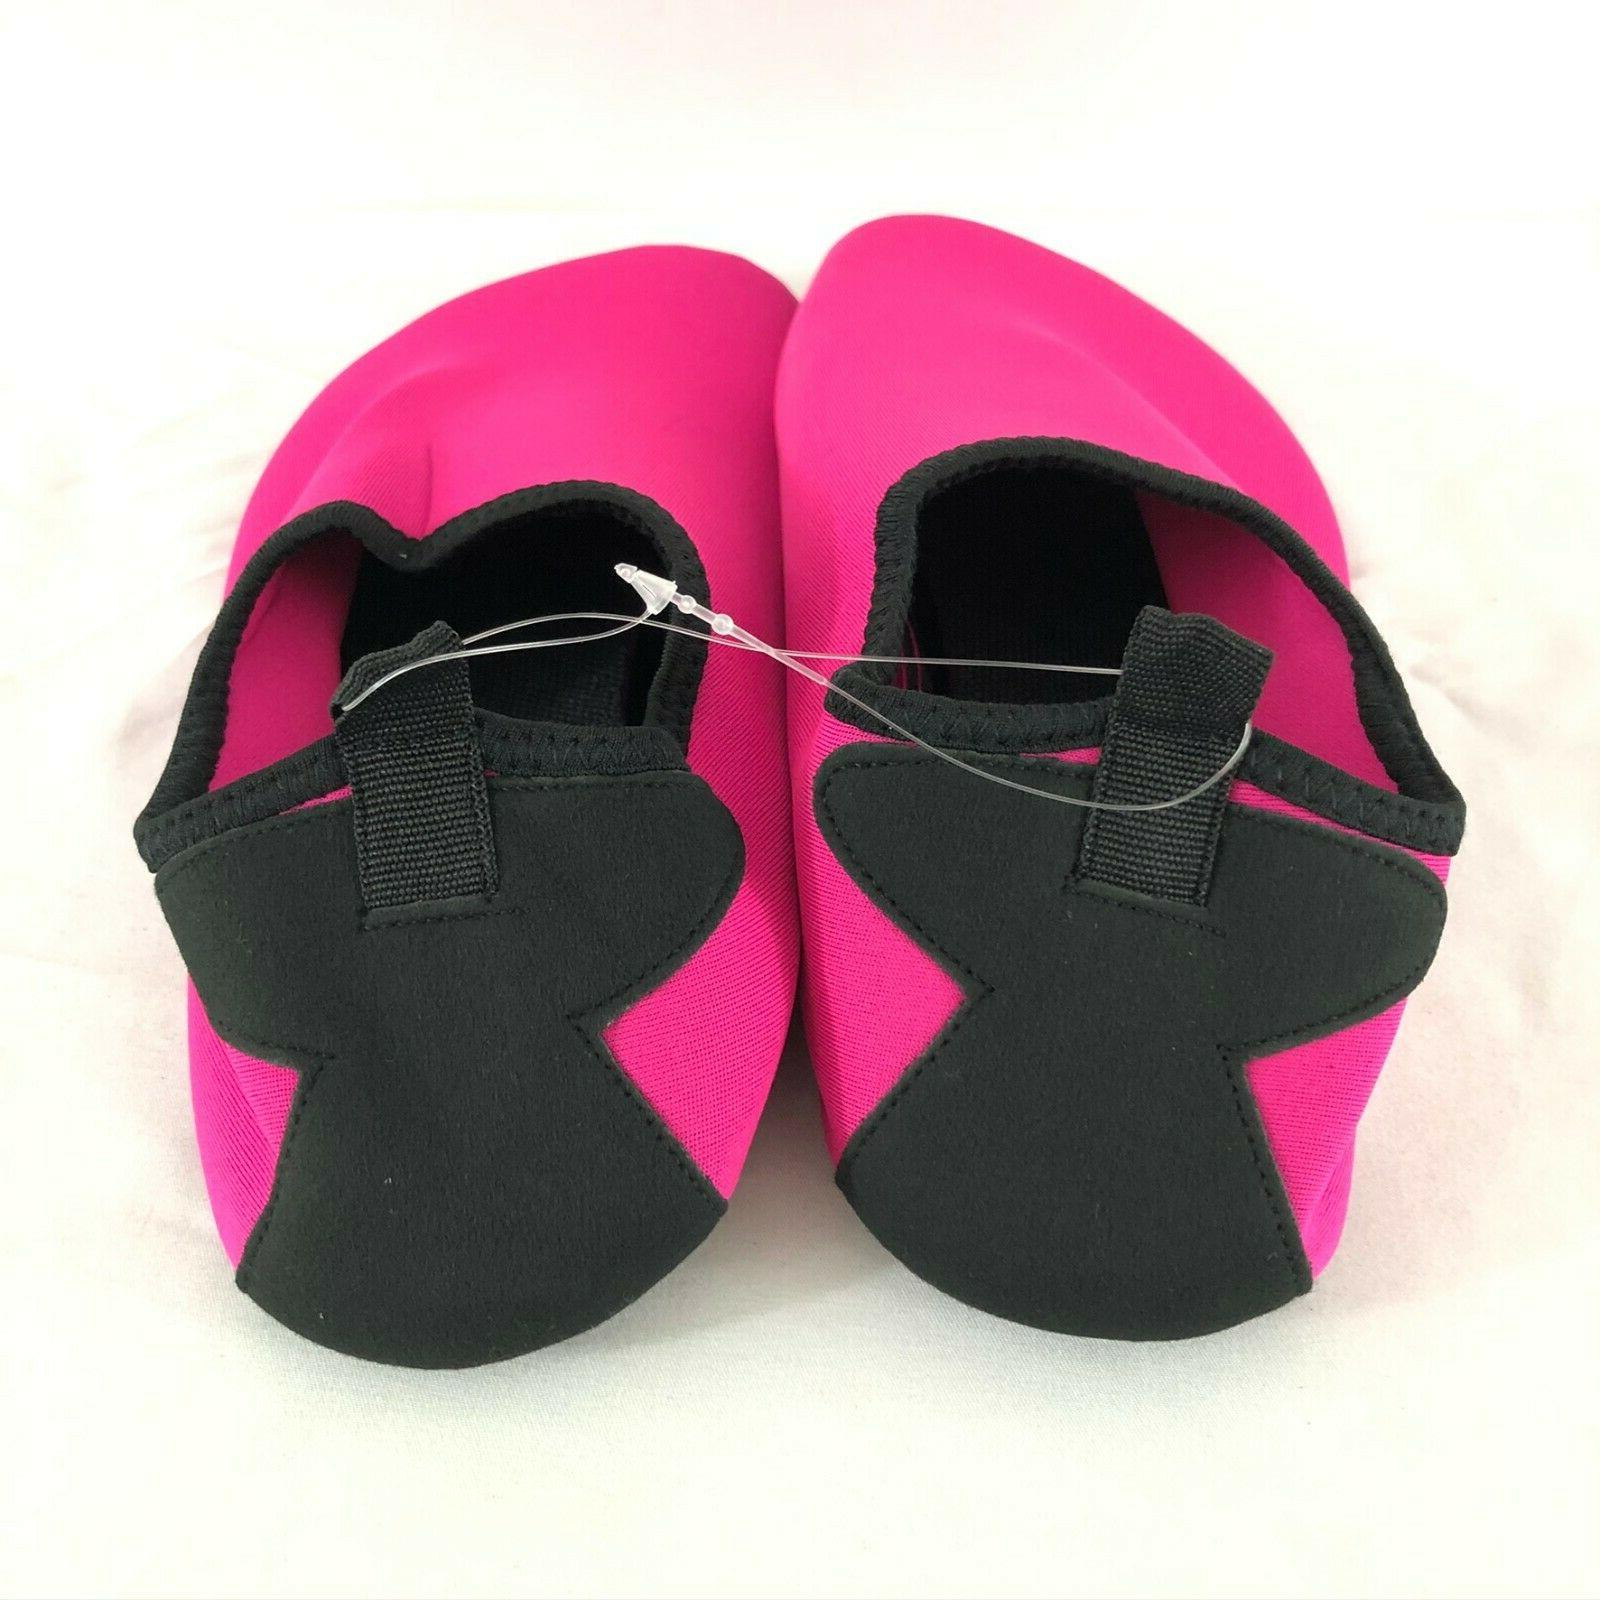 Womens Shoes Slip On Hot Pink Size 38/39 US 7/8